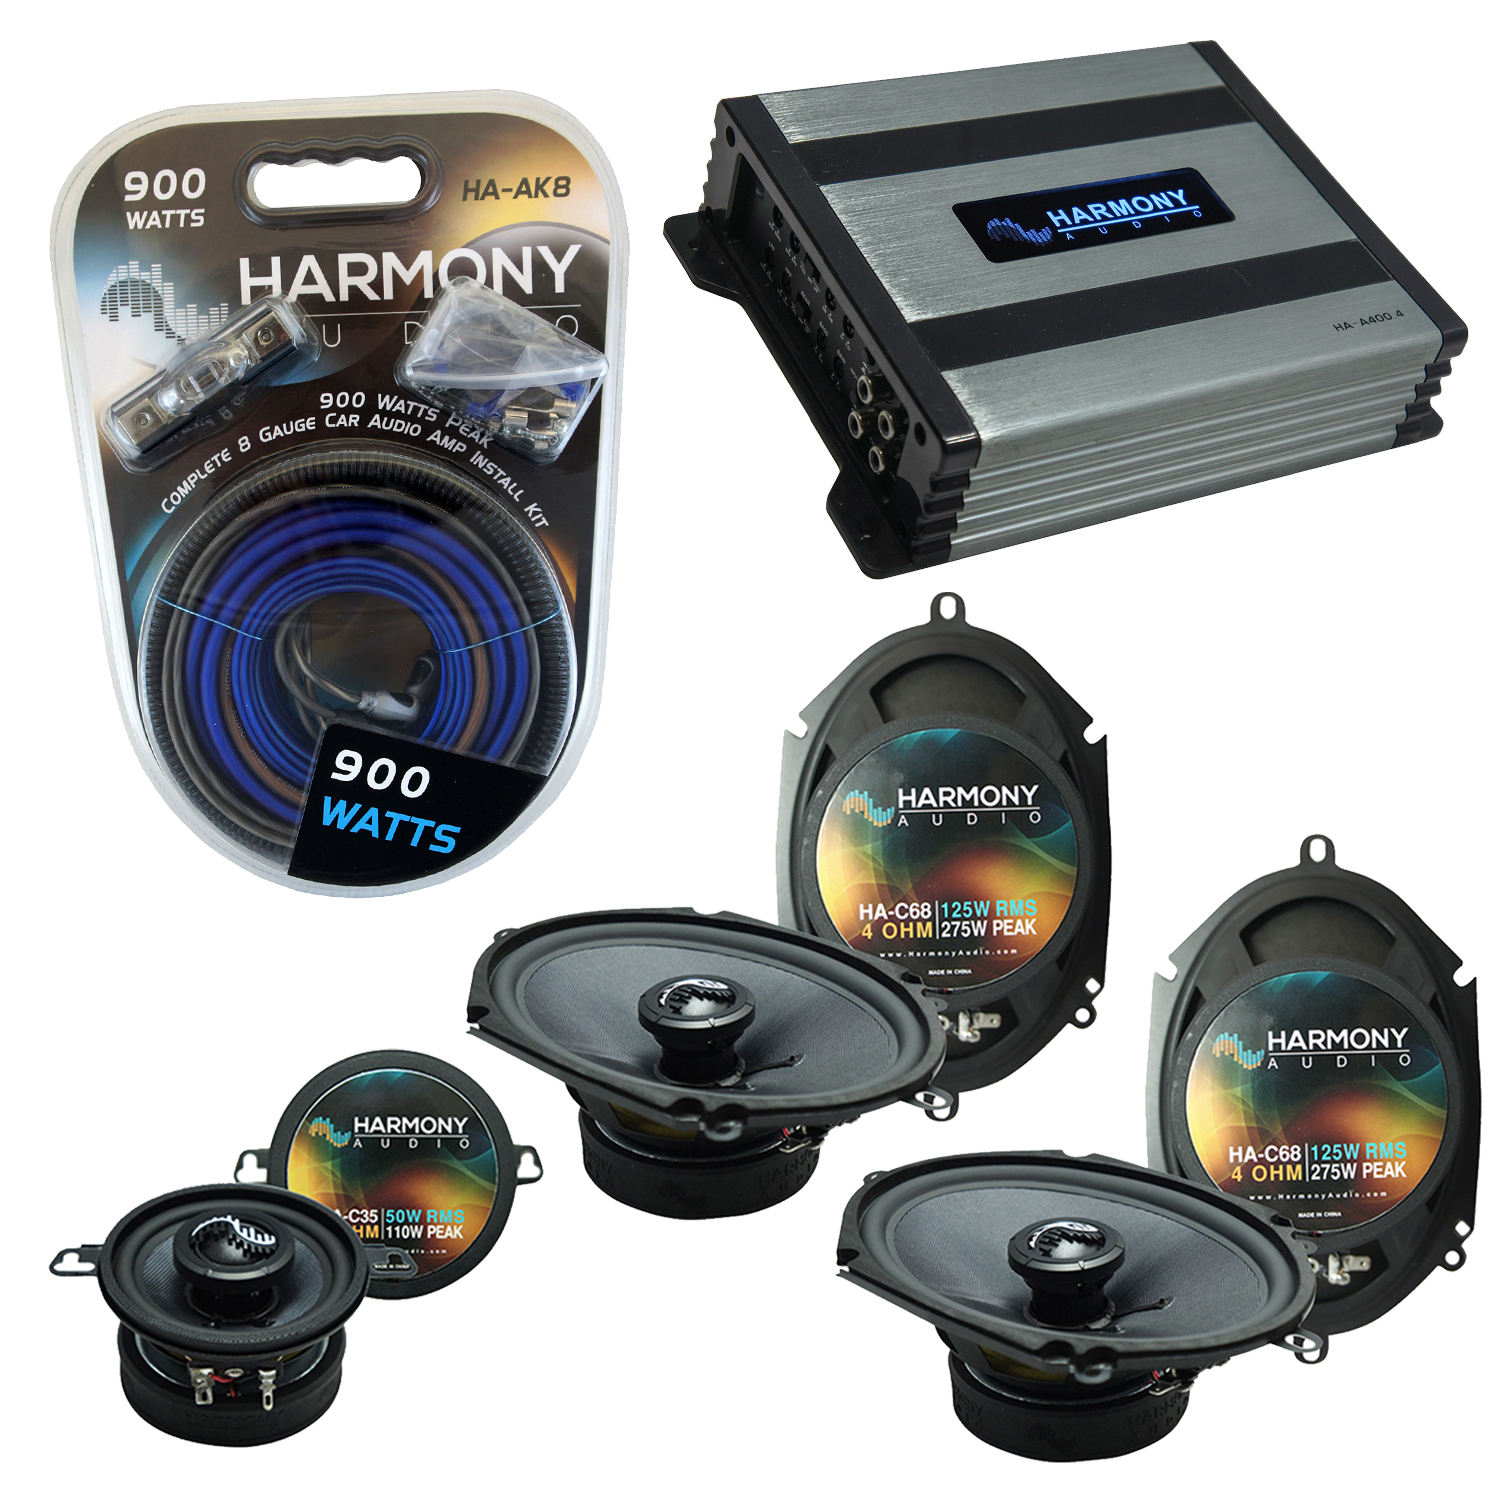 Compatible with Lincoln Mark VIII 96-98 OEM Premium Speaker Replacement Harmony Upgrade & Harmony HA-A400.4